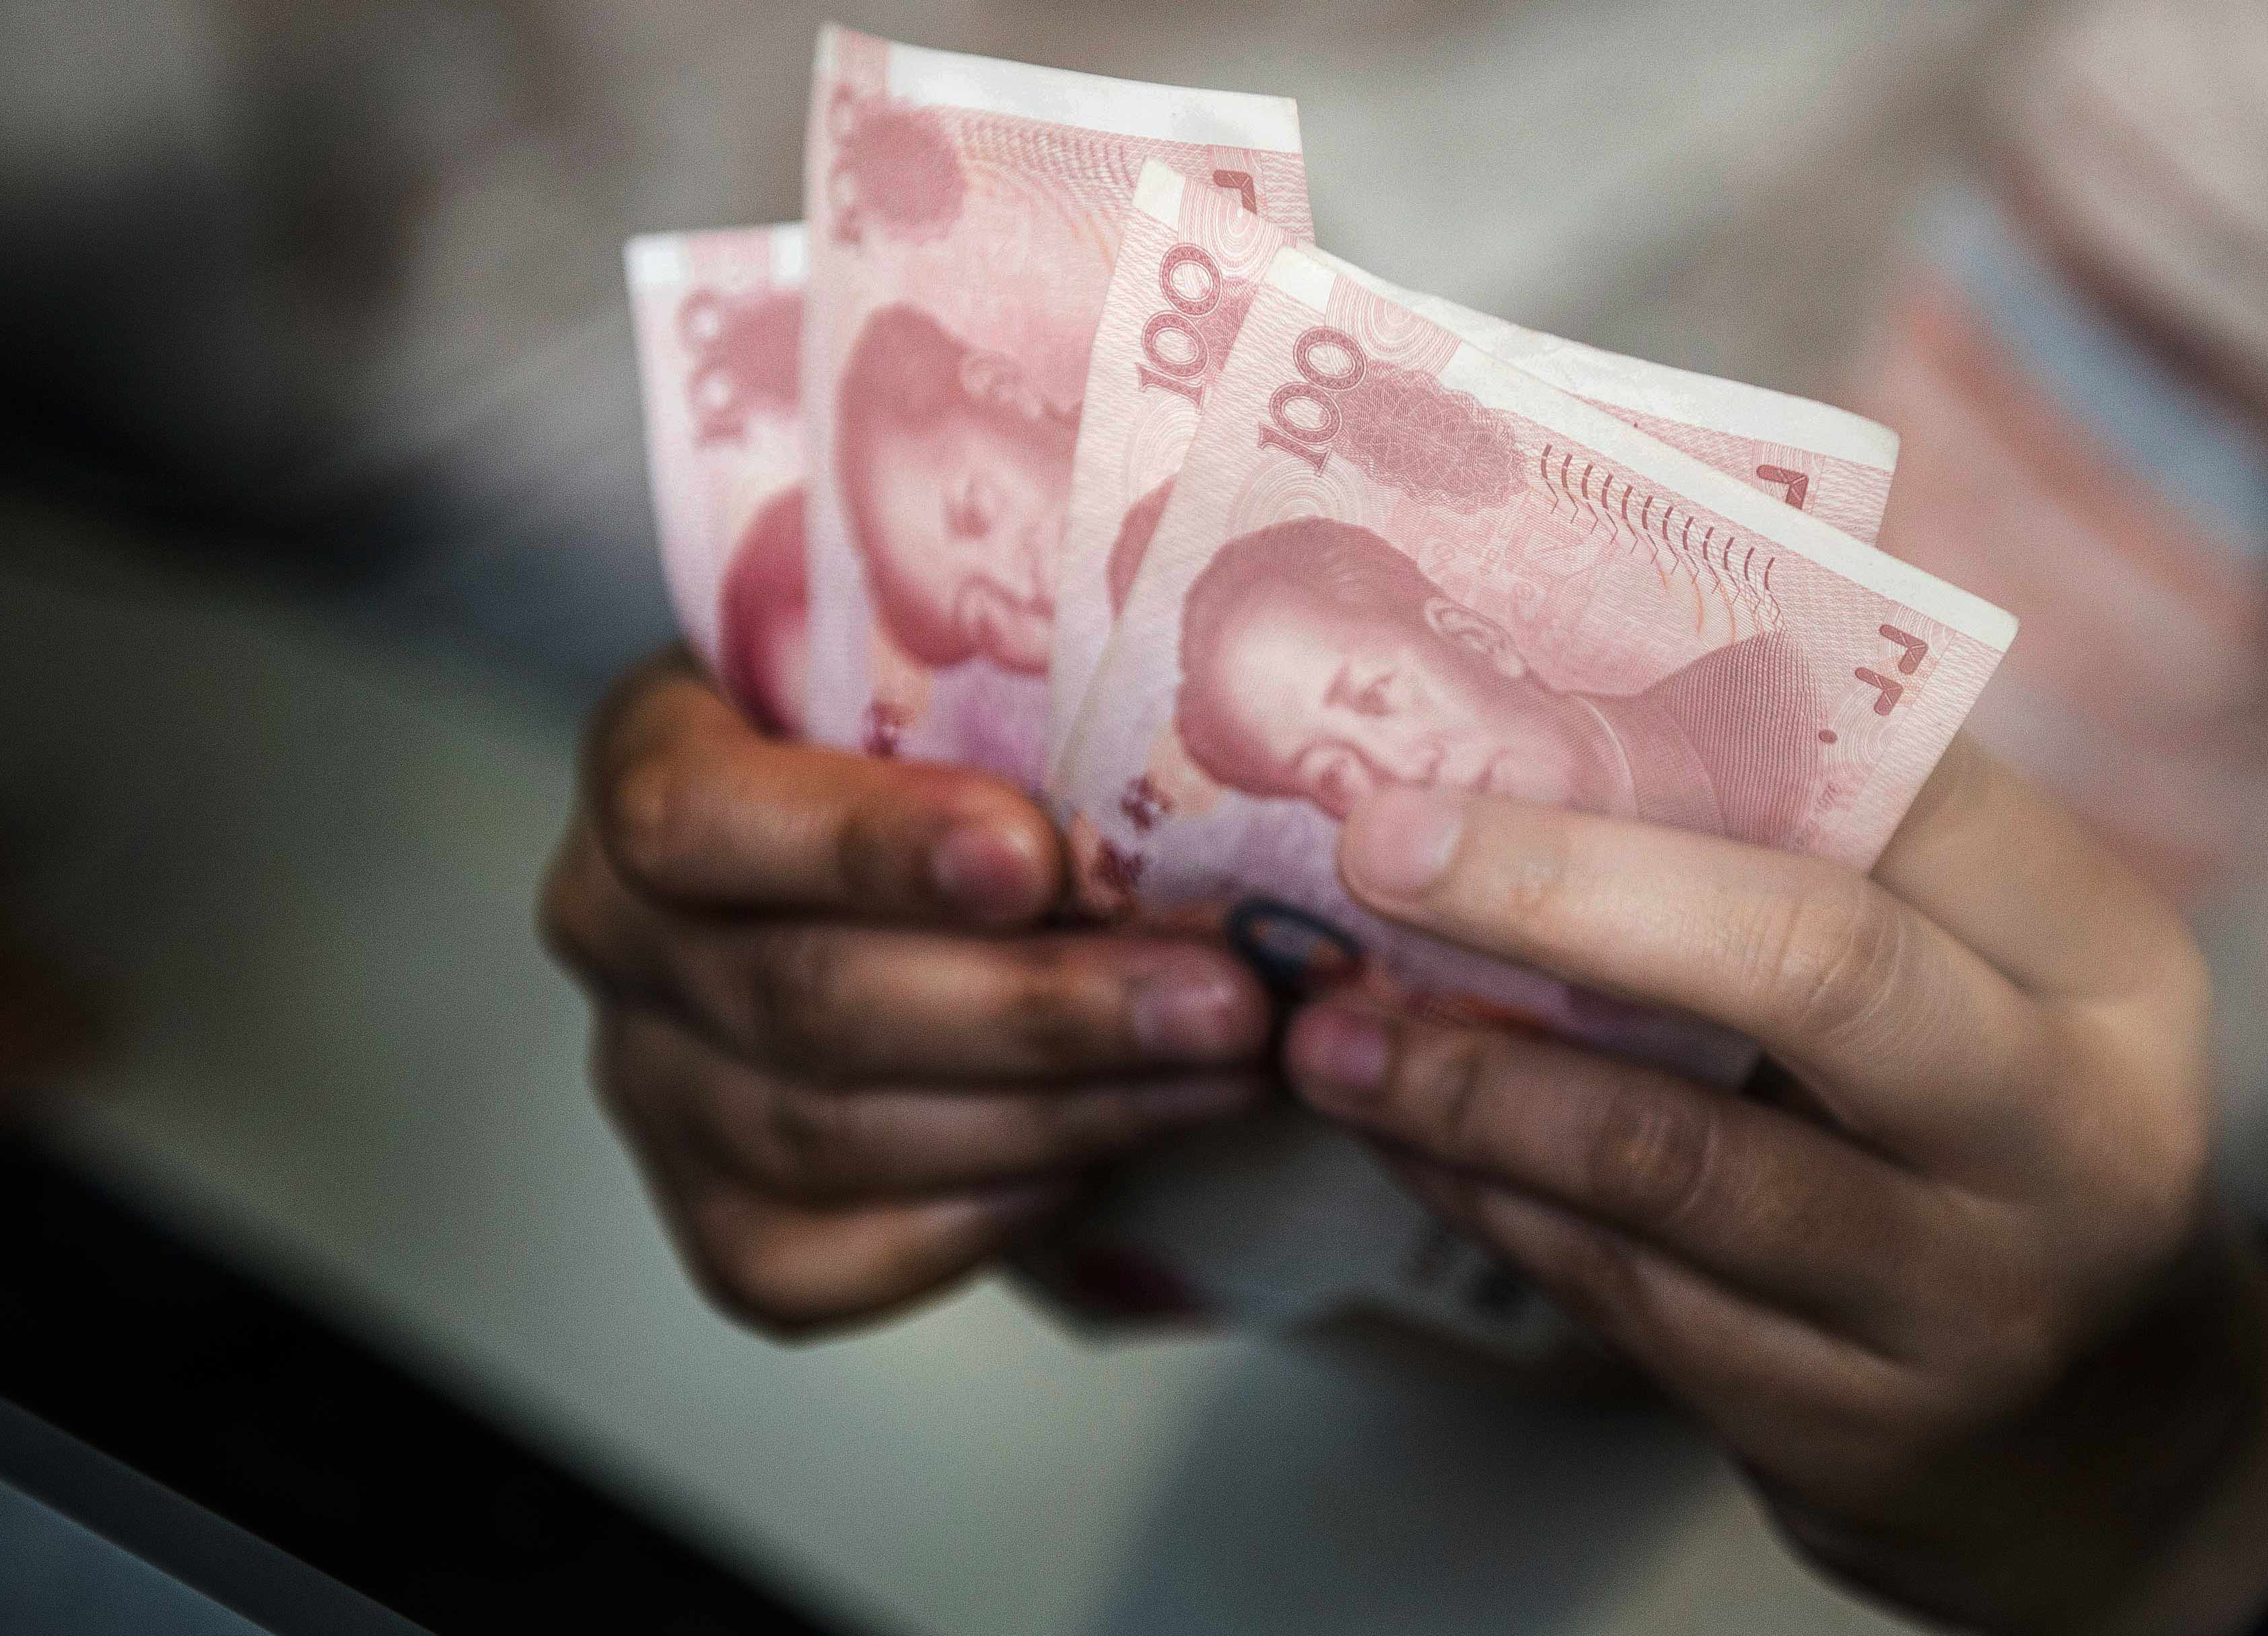 Let the Market 'Truly' Decide Yuan Rate, PBOC Adviser Huang Says - Bloomberg